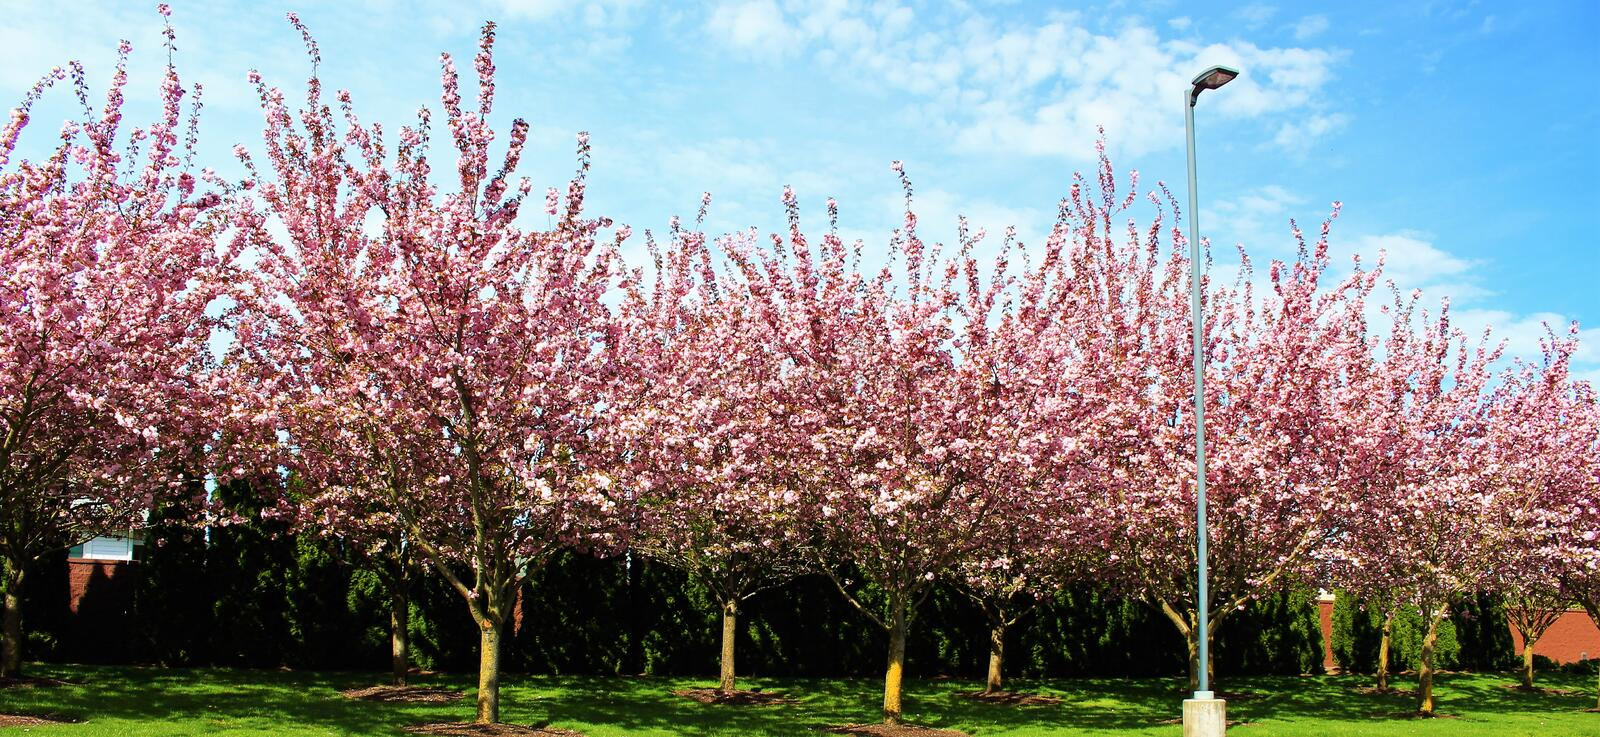 Roadside flowering trees. Rows of flowering trees along the road royalty free stock images